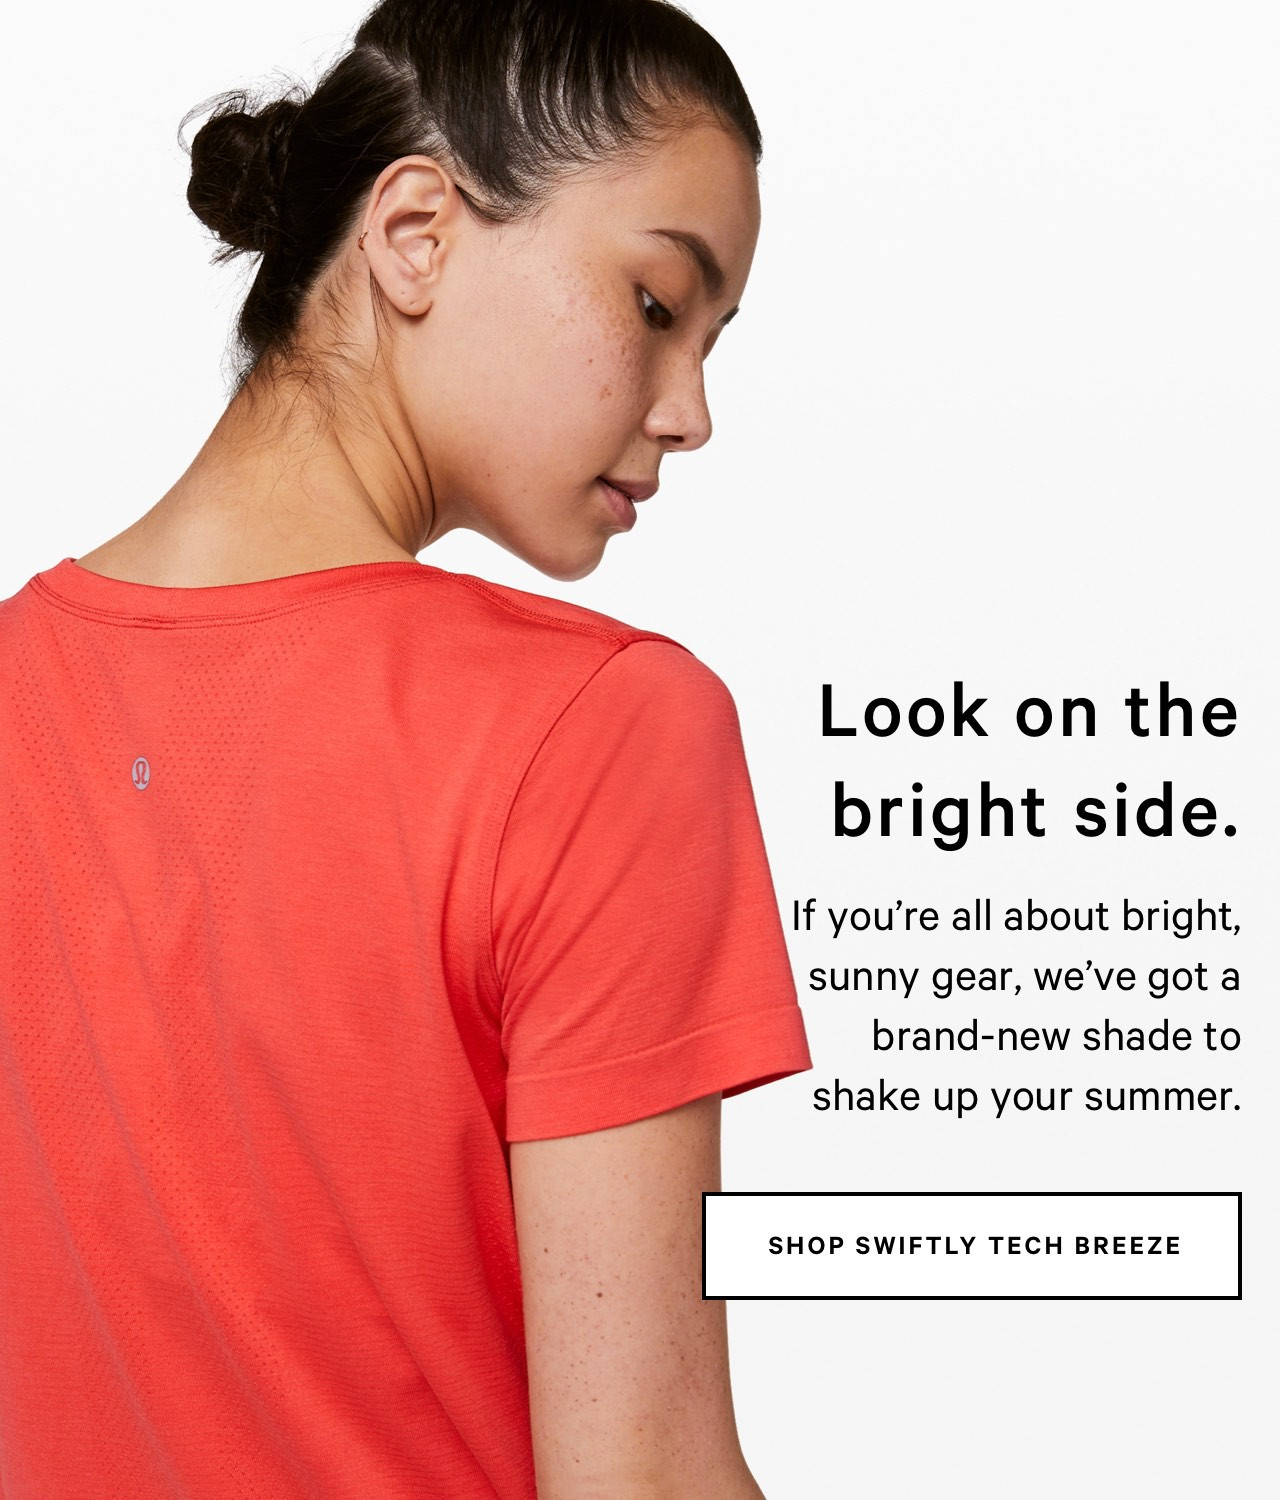 Look on the bright side. - SHOP SWIFTLY TECH BREEZE